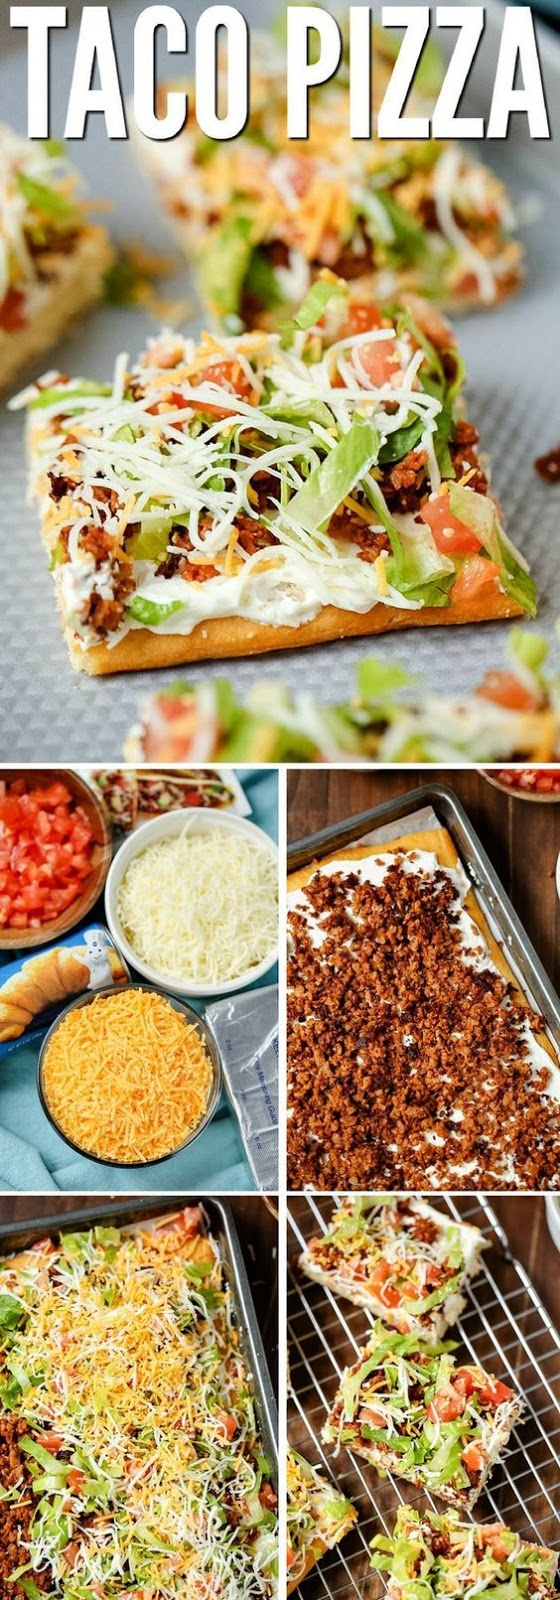 TACO PIZZA #PIZZA #DINNER #TASTYAPPETIZER